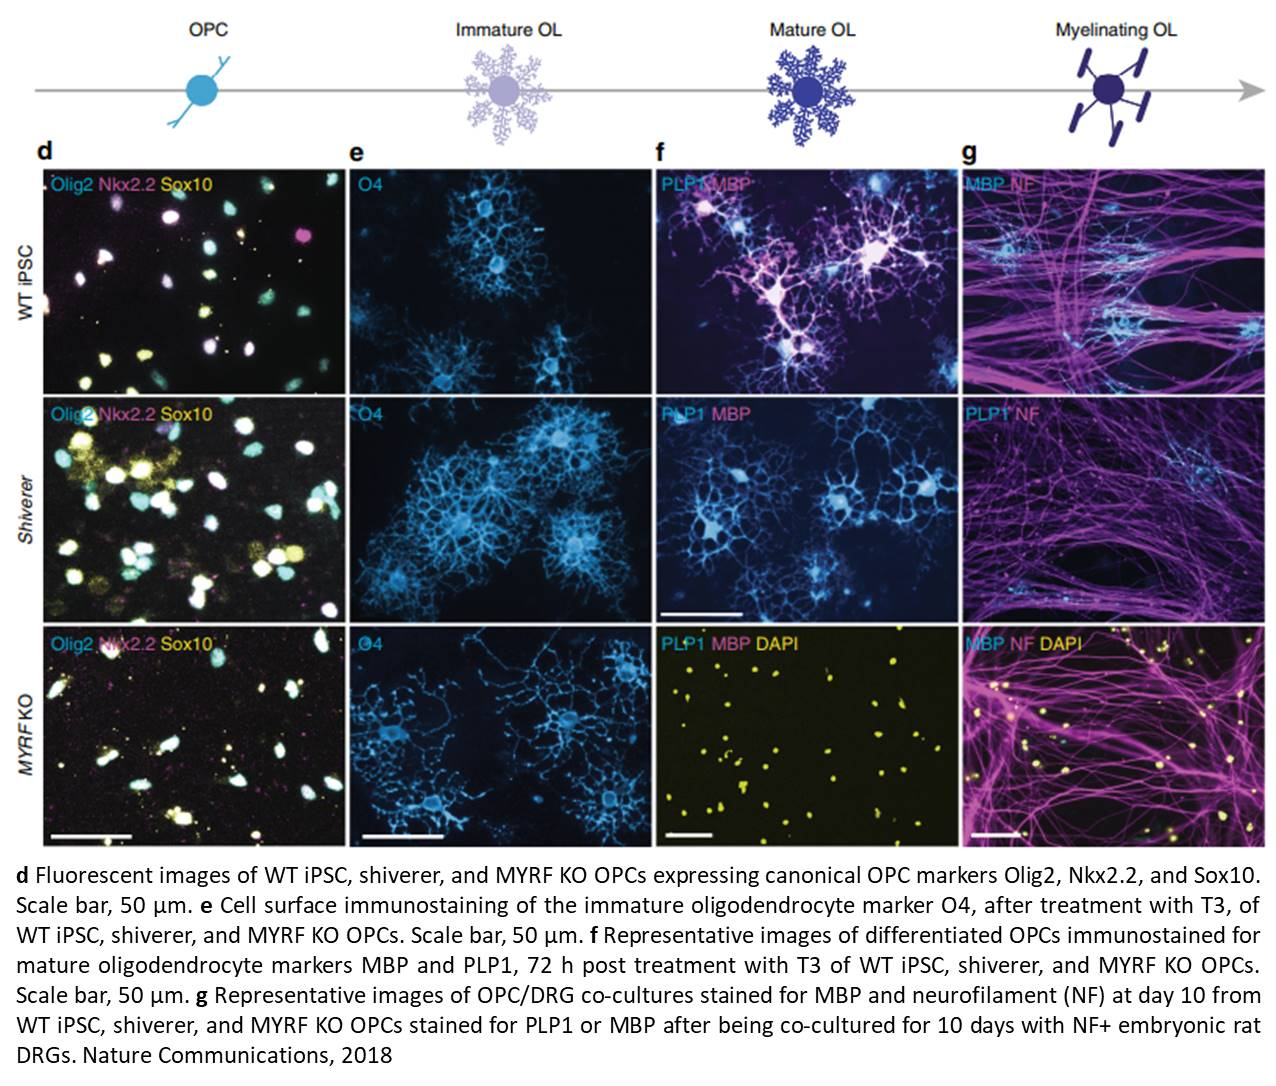 Rapid functional genetics of the oligodendrocyte lineage using pluripotent stem cells